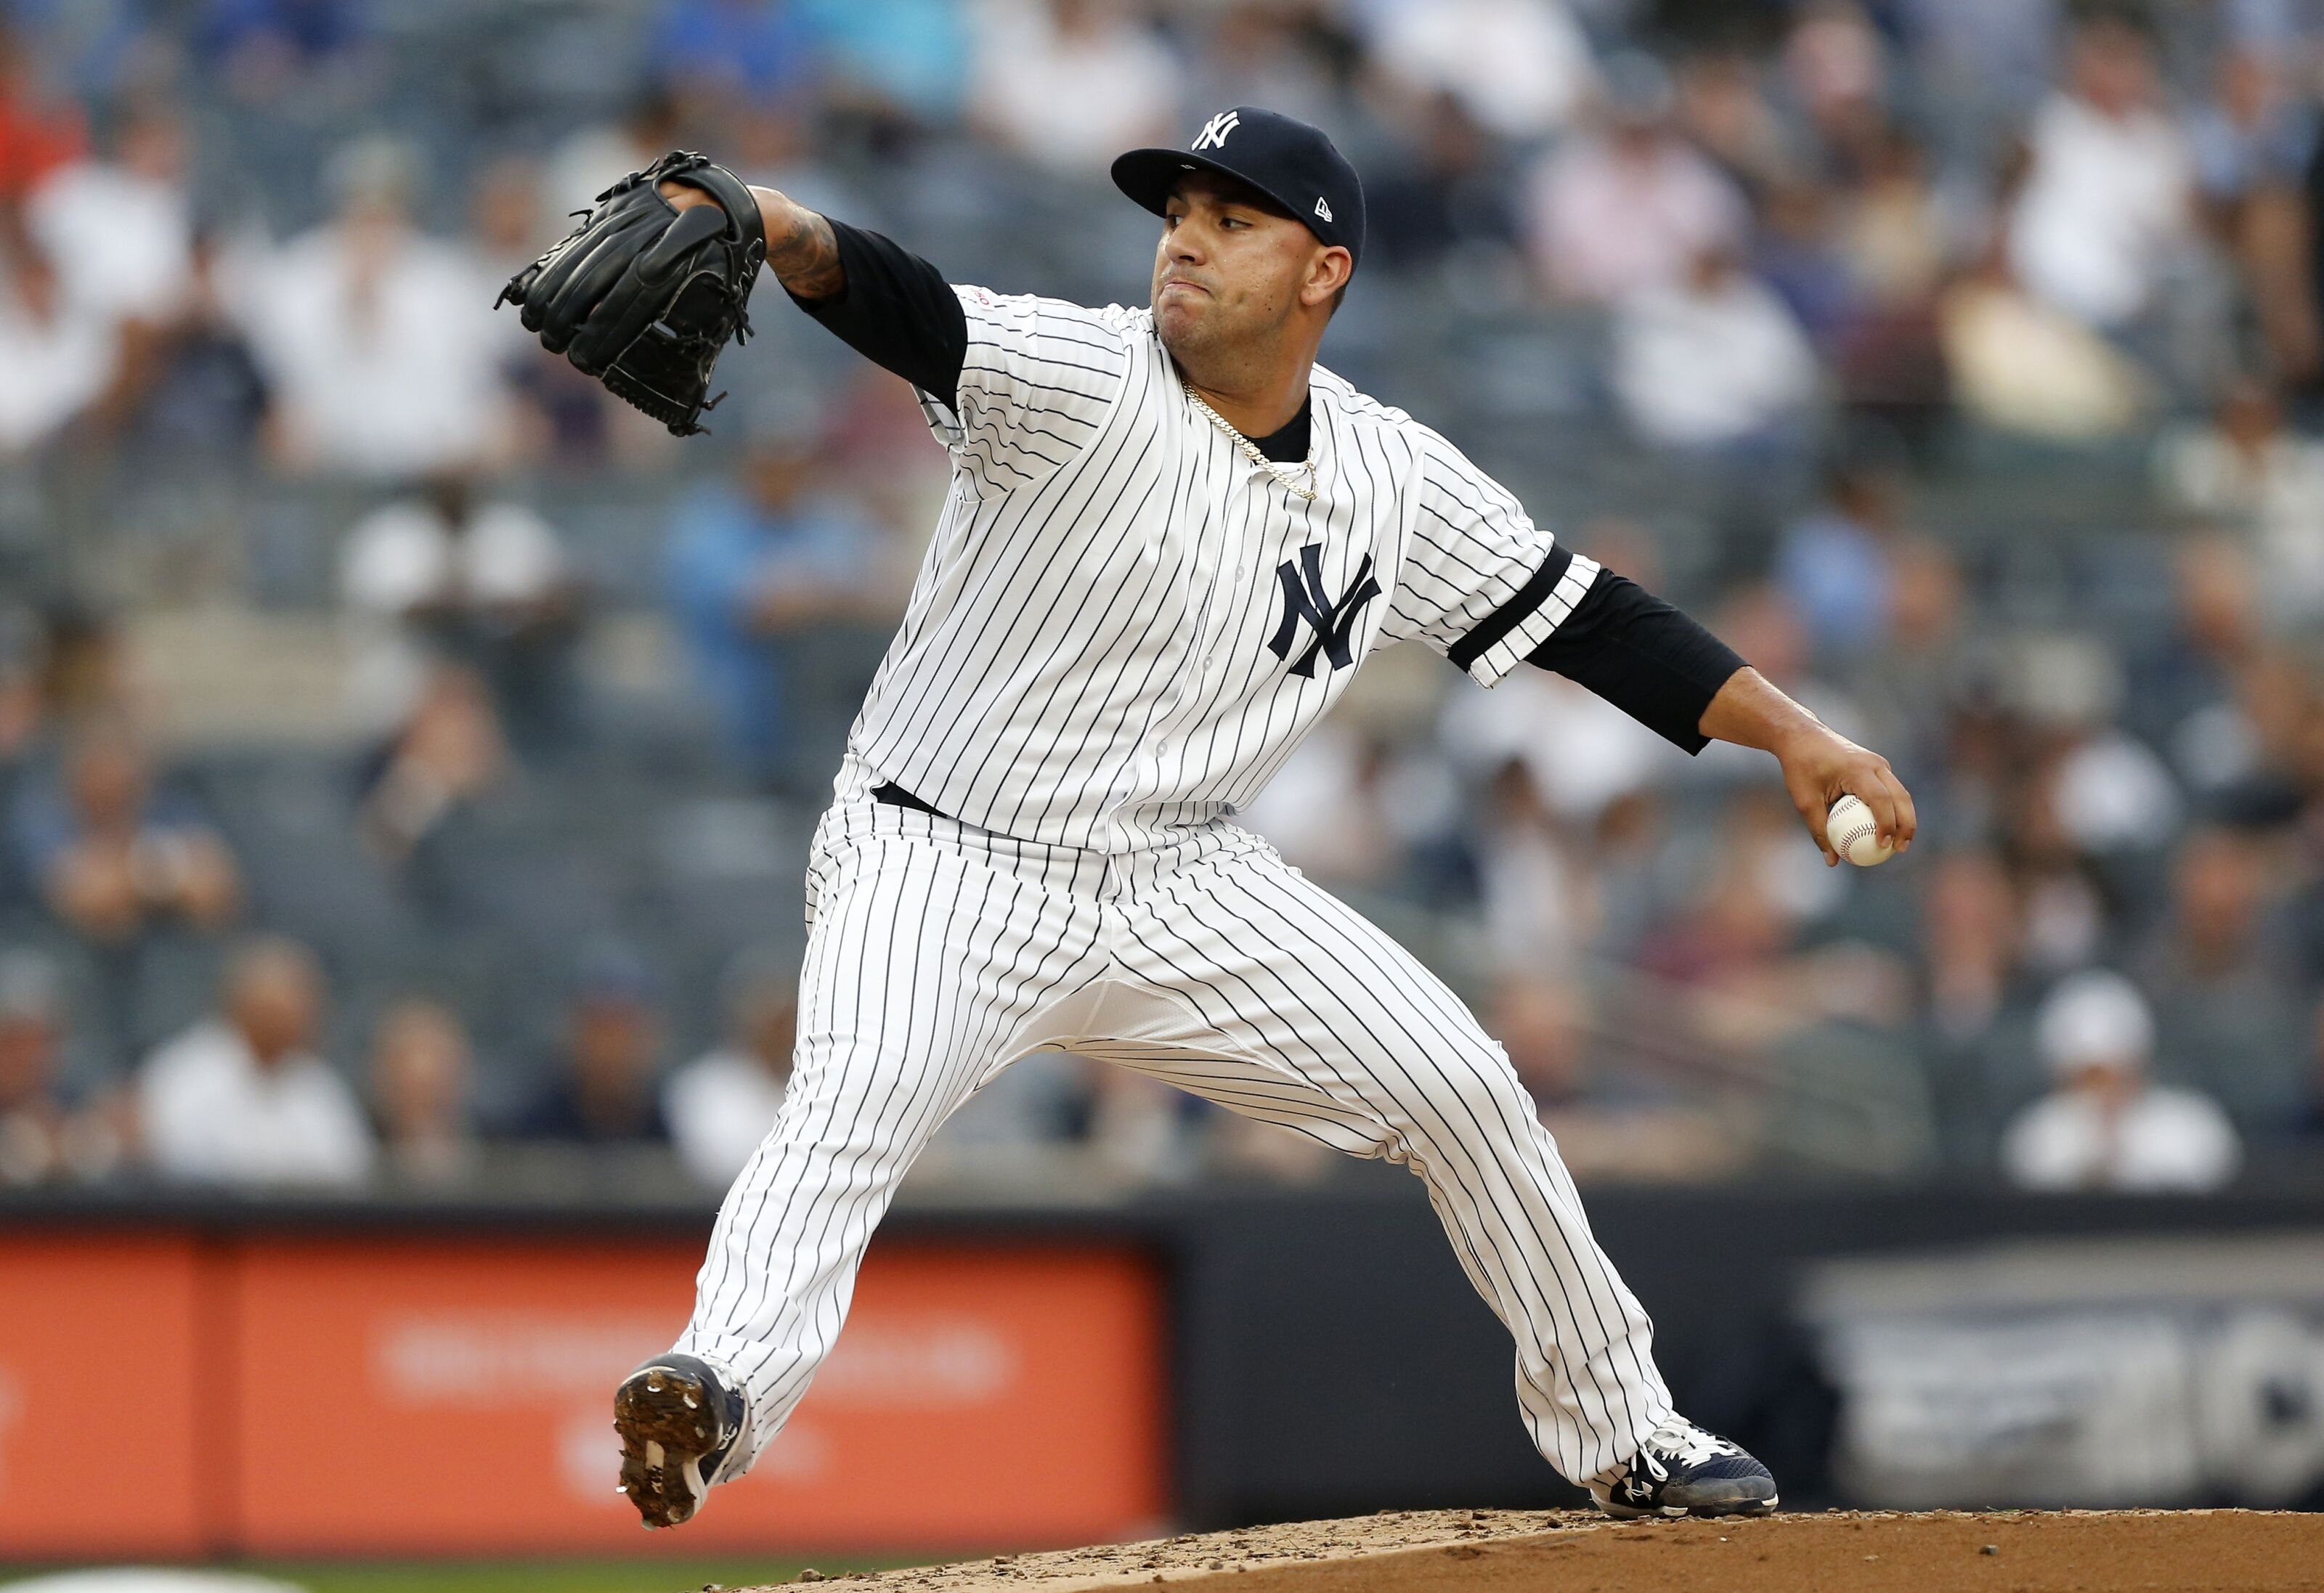 Yankees Trade Nestor Cortes Jr To Mariners For